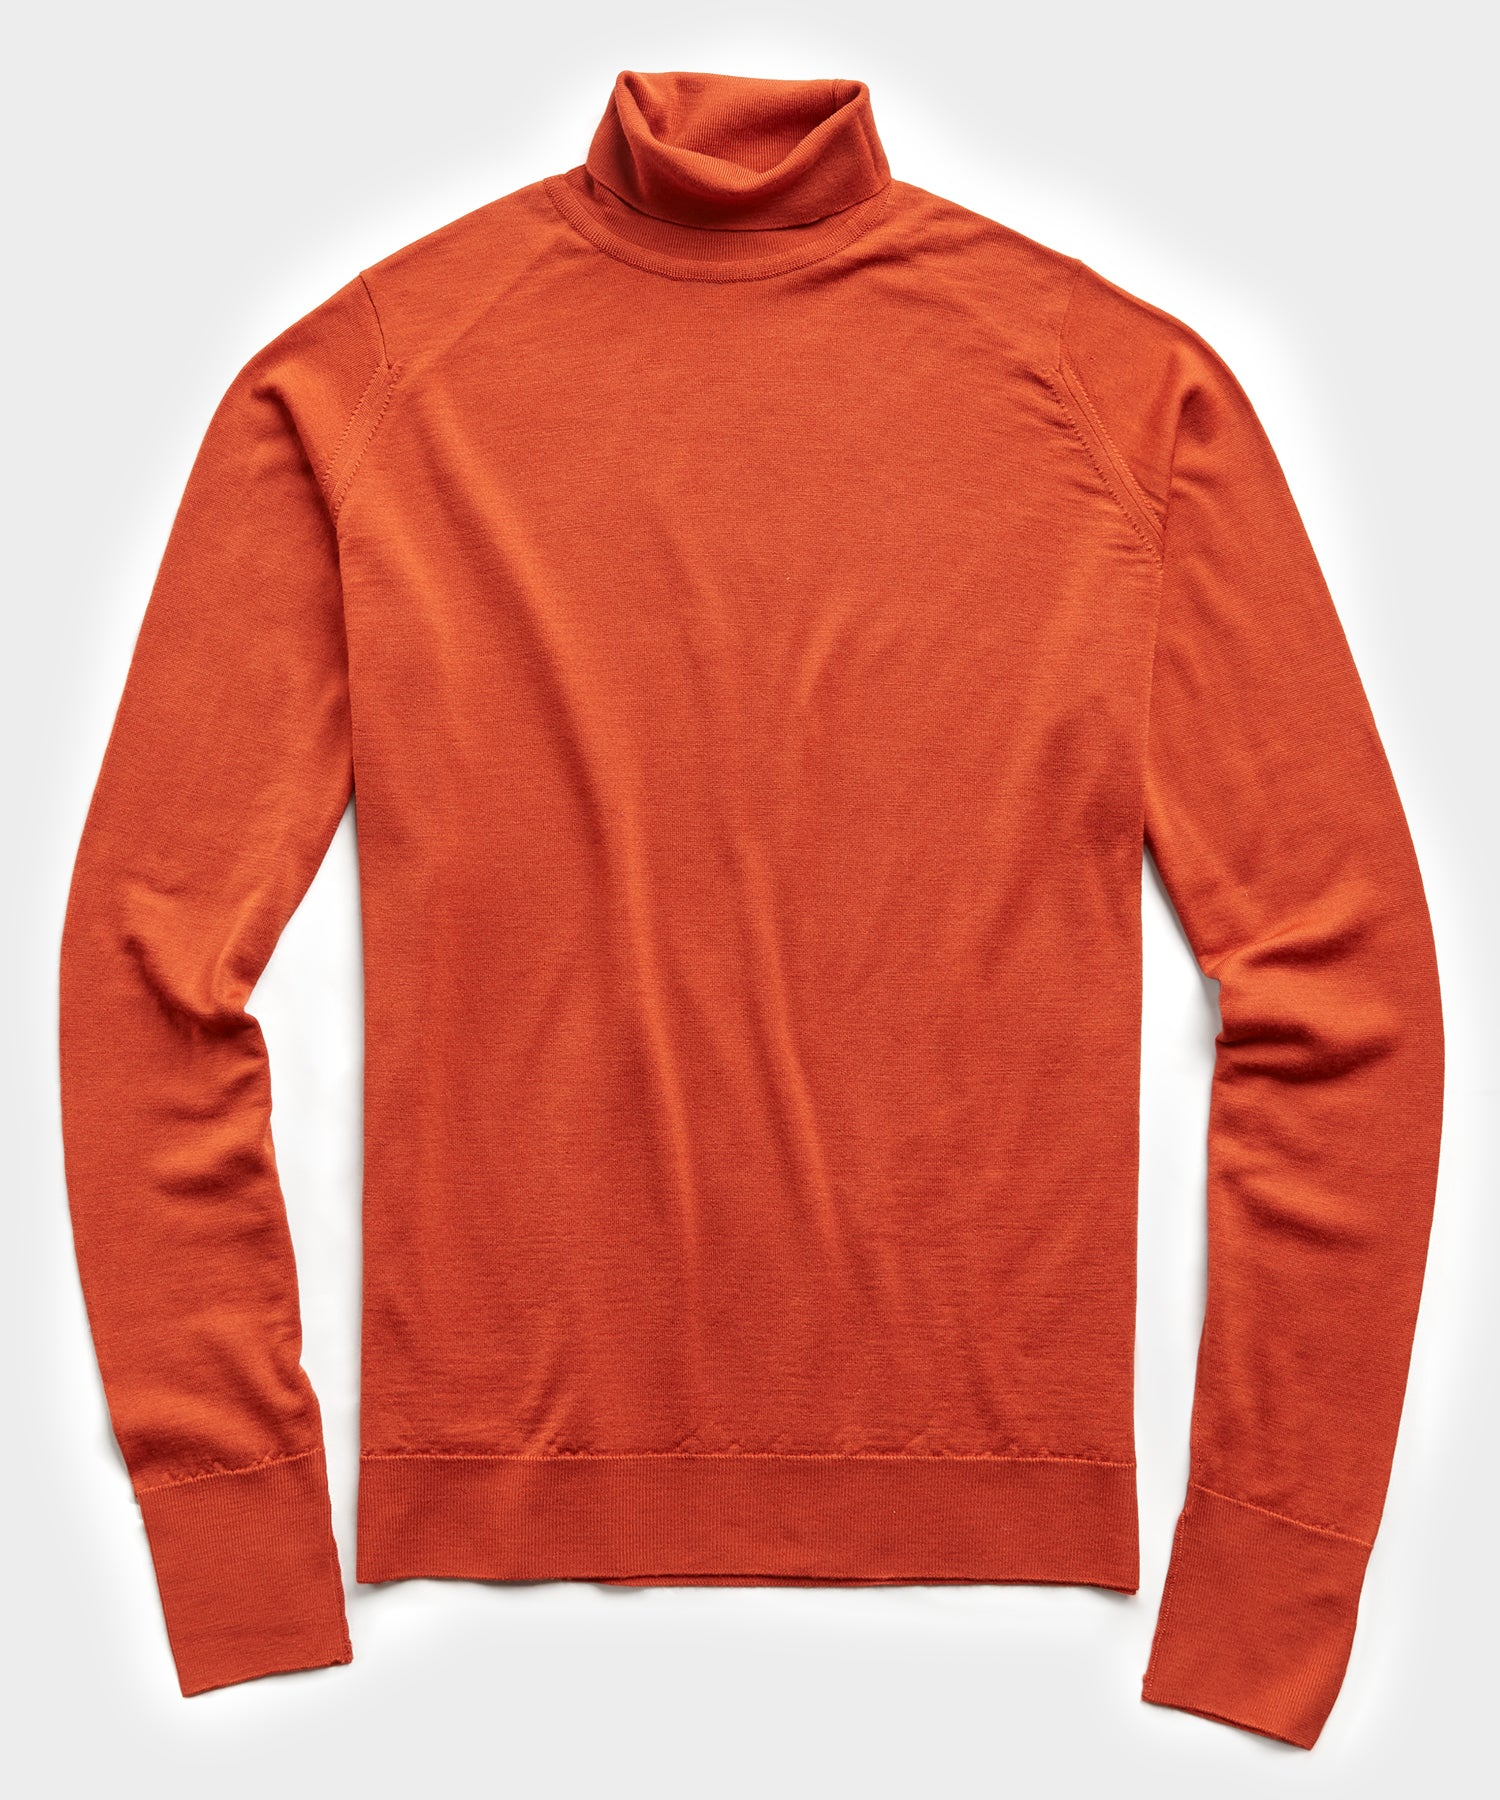 John Smedley Easy Fit Turtleneck in Orange